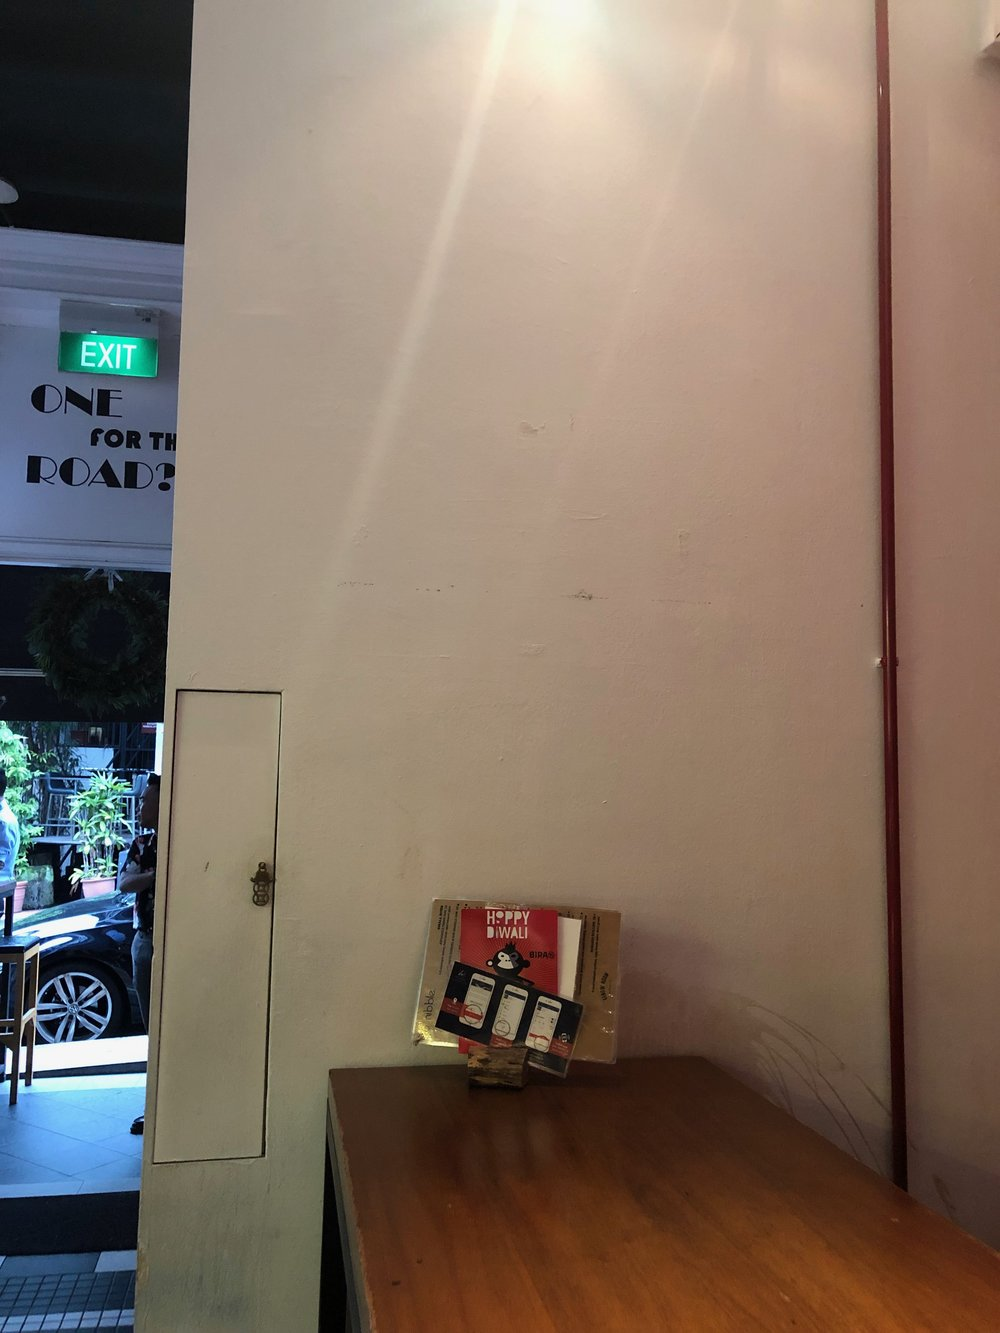 How the blank wall looked like prior to being painted and the light compartment on the left!